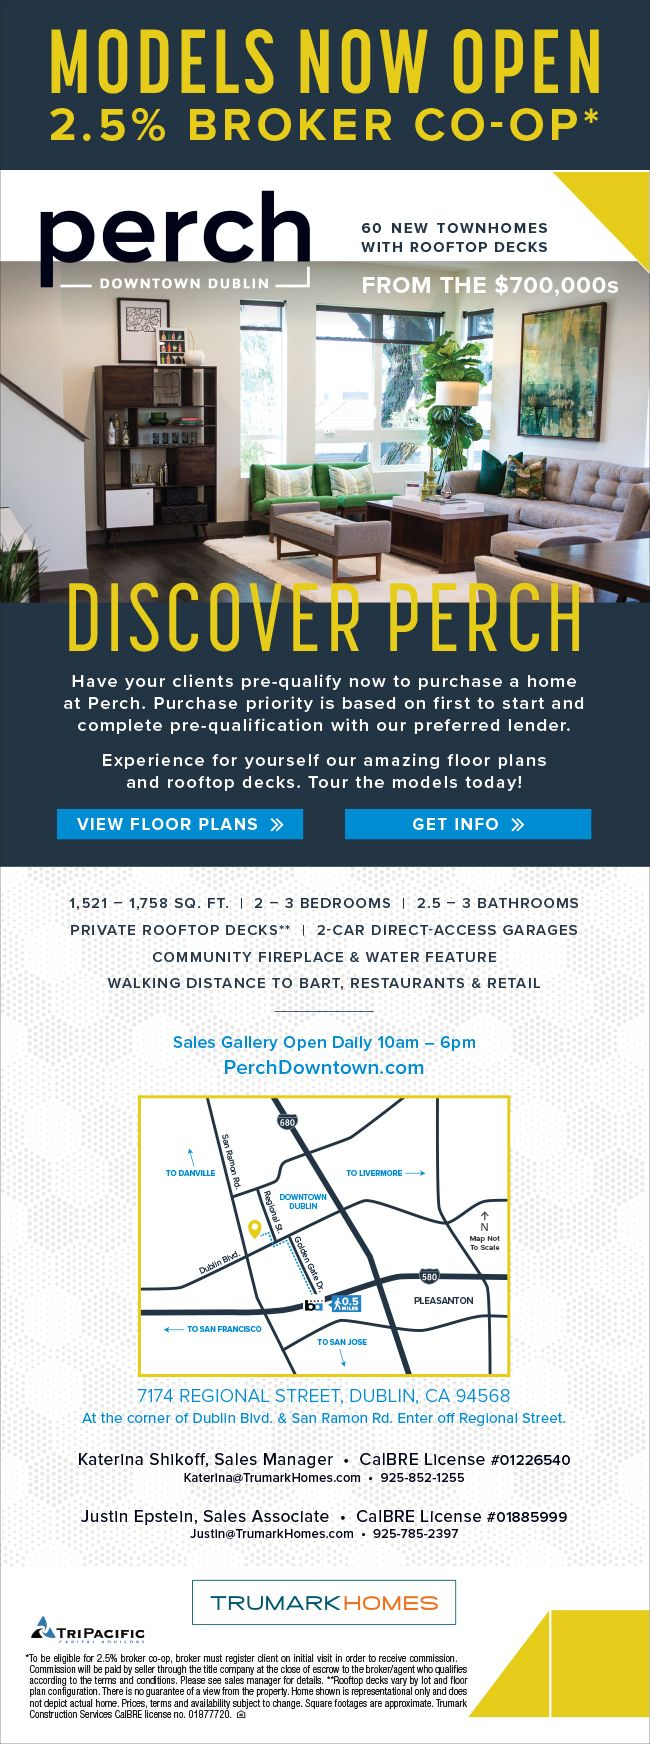 New Homes for Sale in Dublin, California  Models Now Open at Perch – Tour Today  Broker's Welcome  |  2.5% Broker Commission  |  Your Clients will Love the Private Rooftop Decks and walking distance to BART, Restaurants & Retail  http://perchdowntown.com/